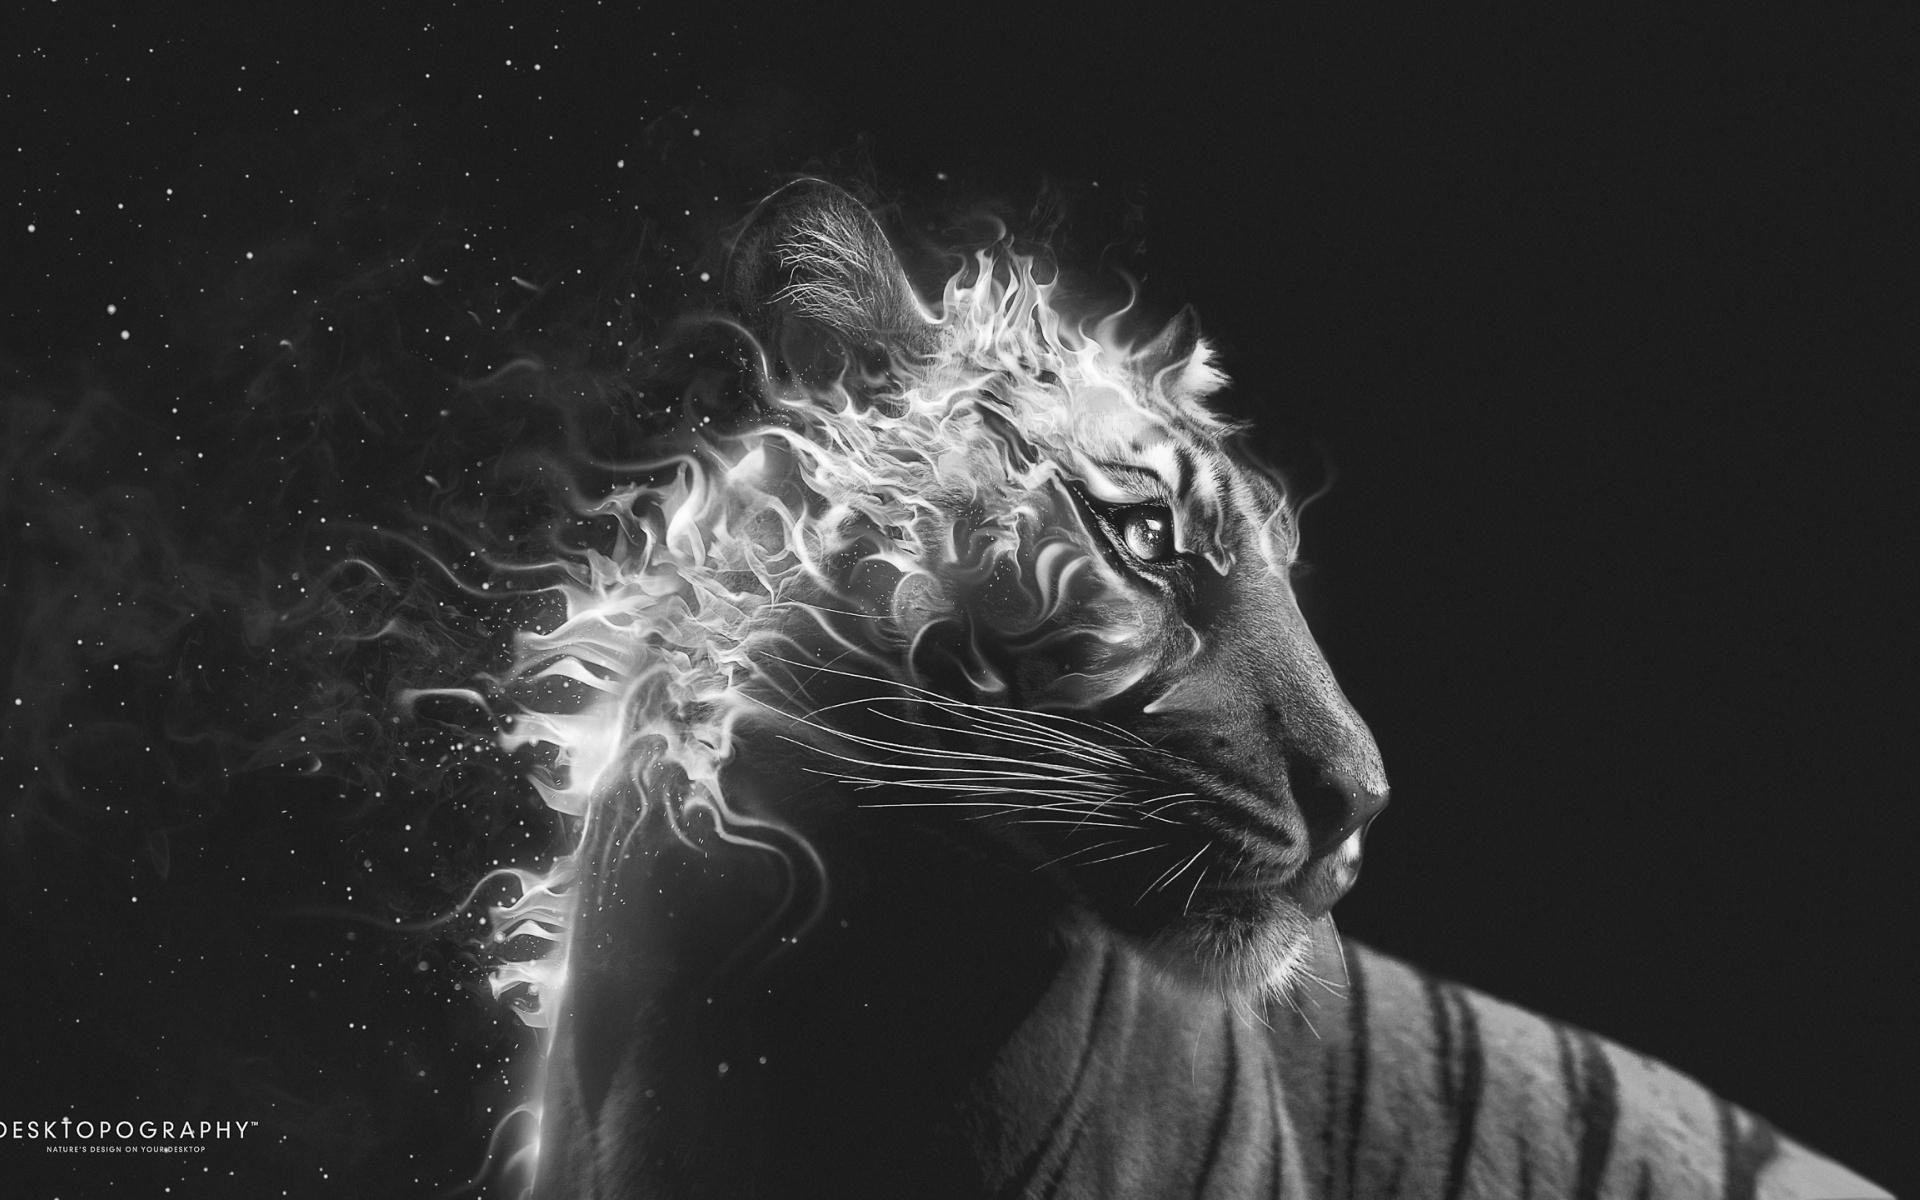 Tiger Head On Fire Black Background Animal Fantasy HD wallpaper for free